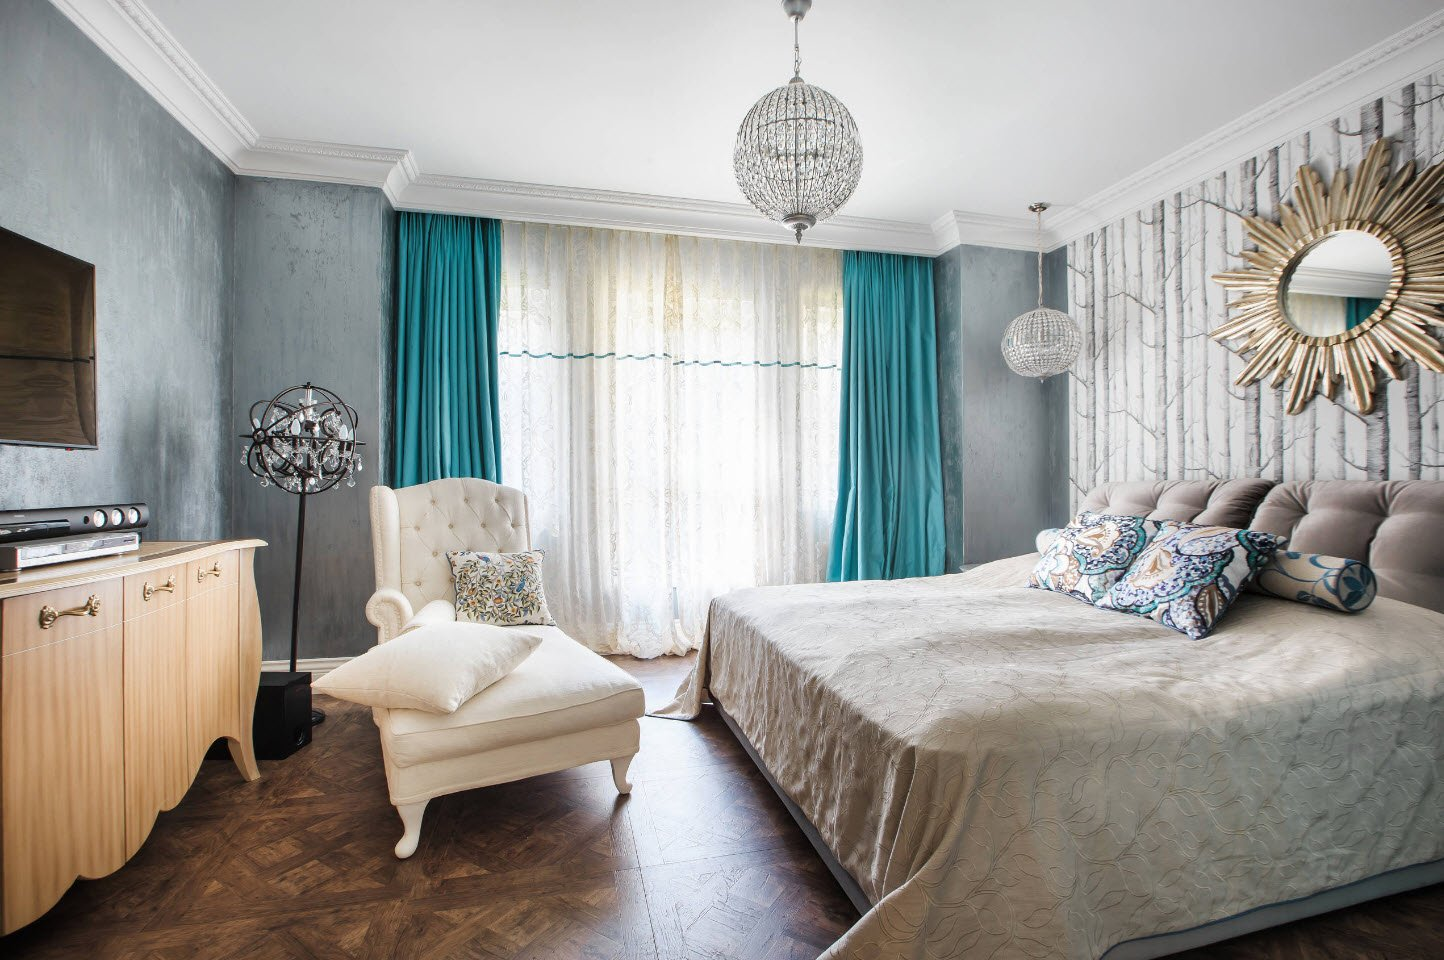 Bedroom Curtains: Full Guide on How to Decorate the Windows. Turquoise bedroom curtains and dark floor covering in modern bedroom